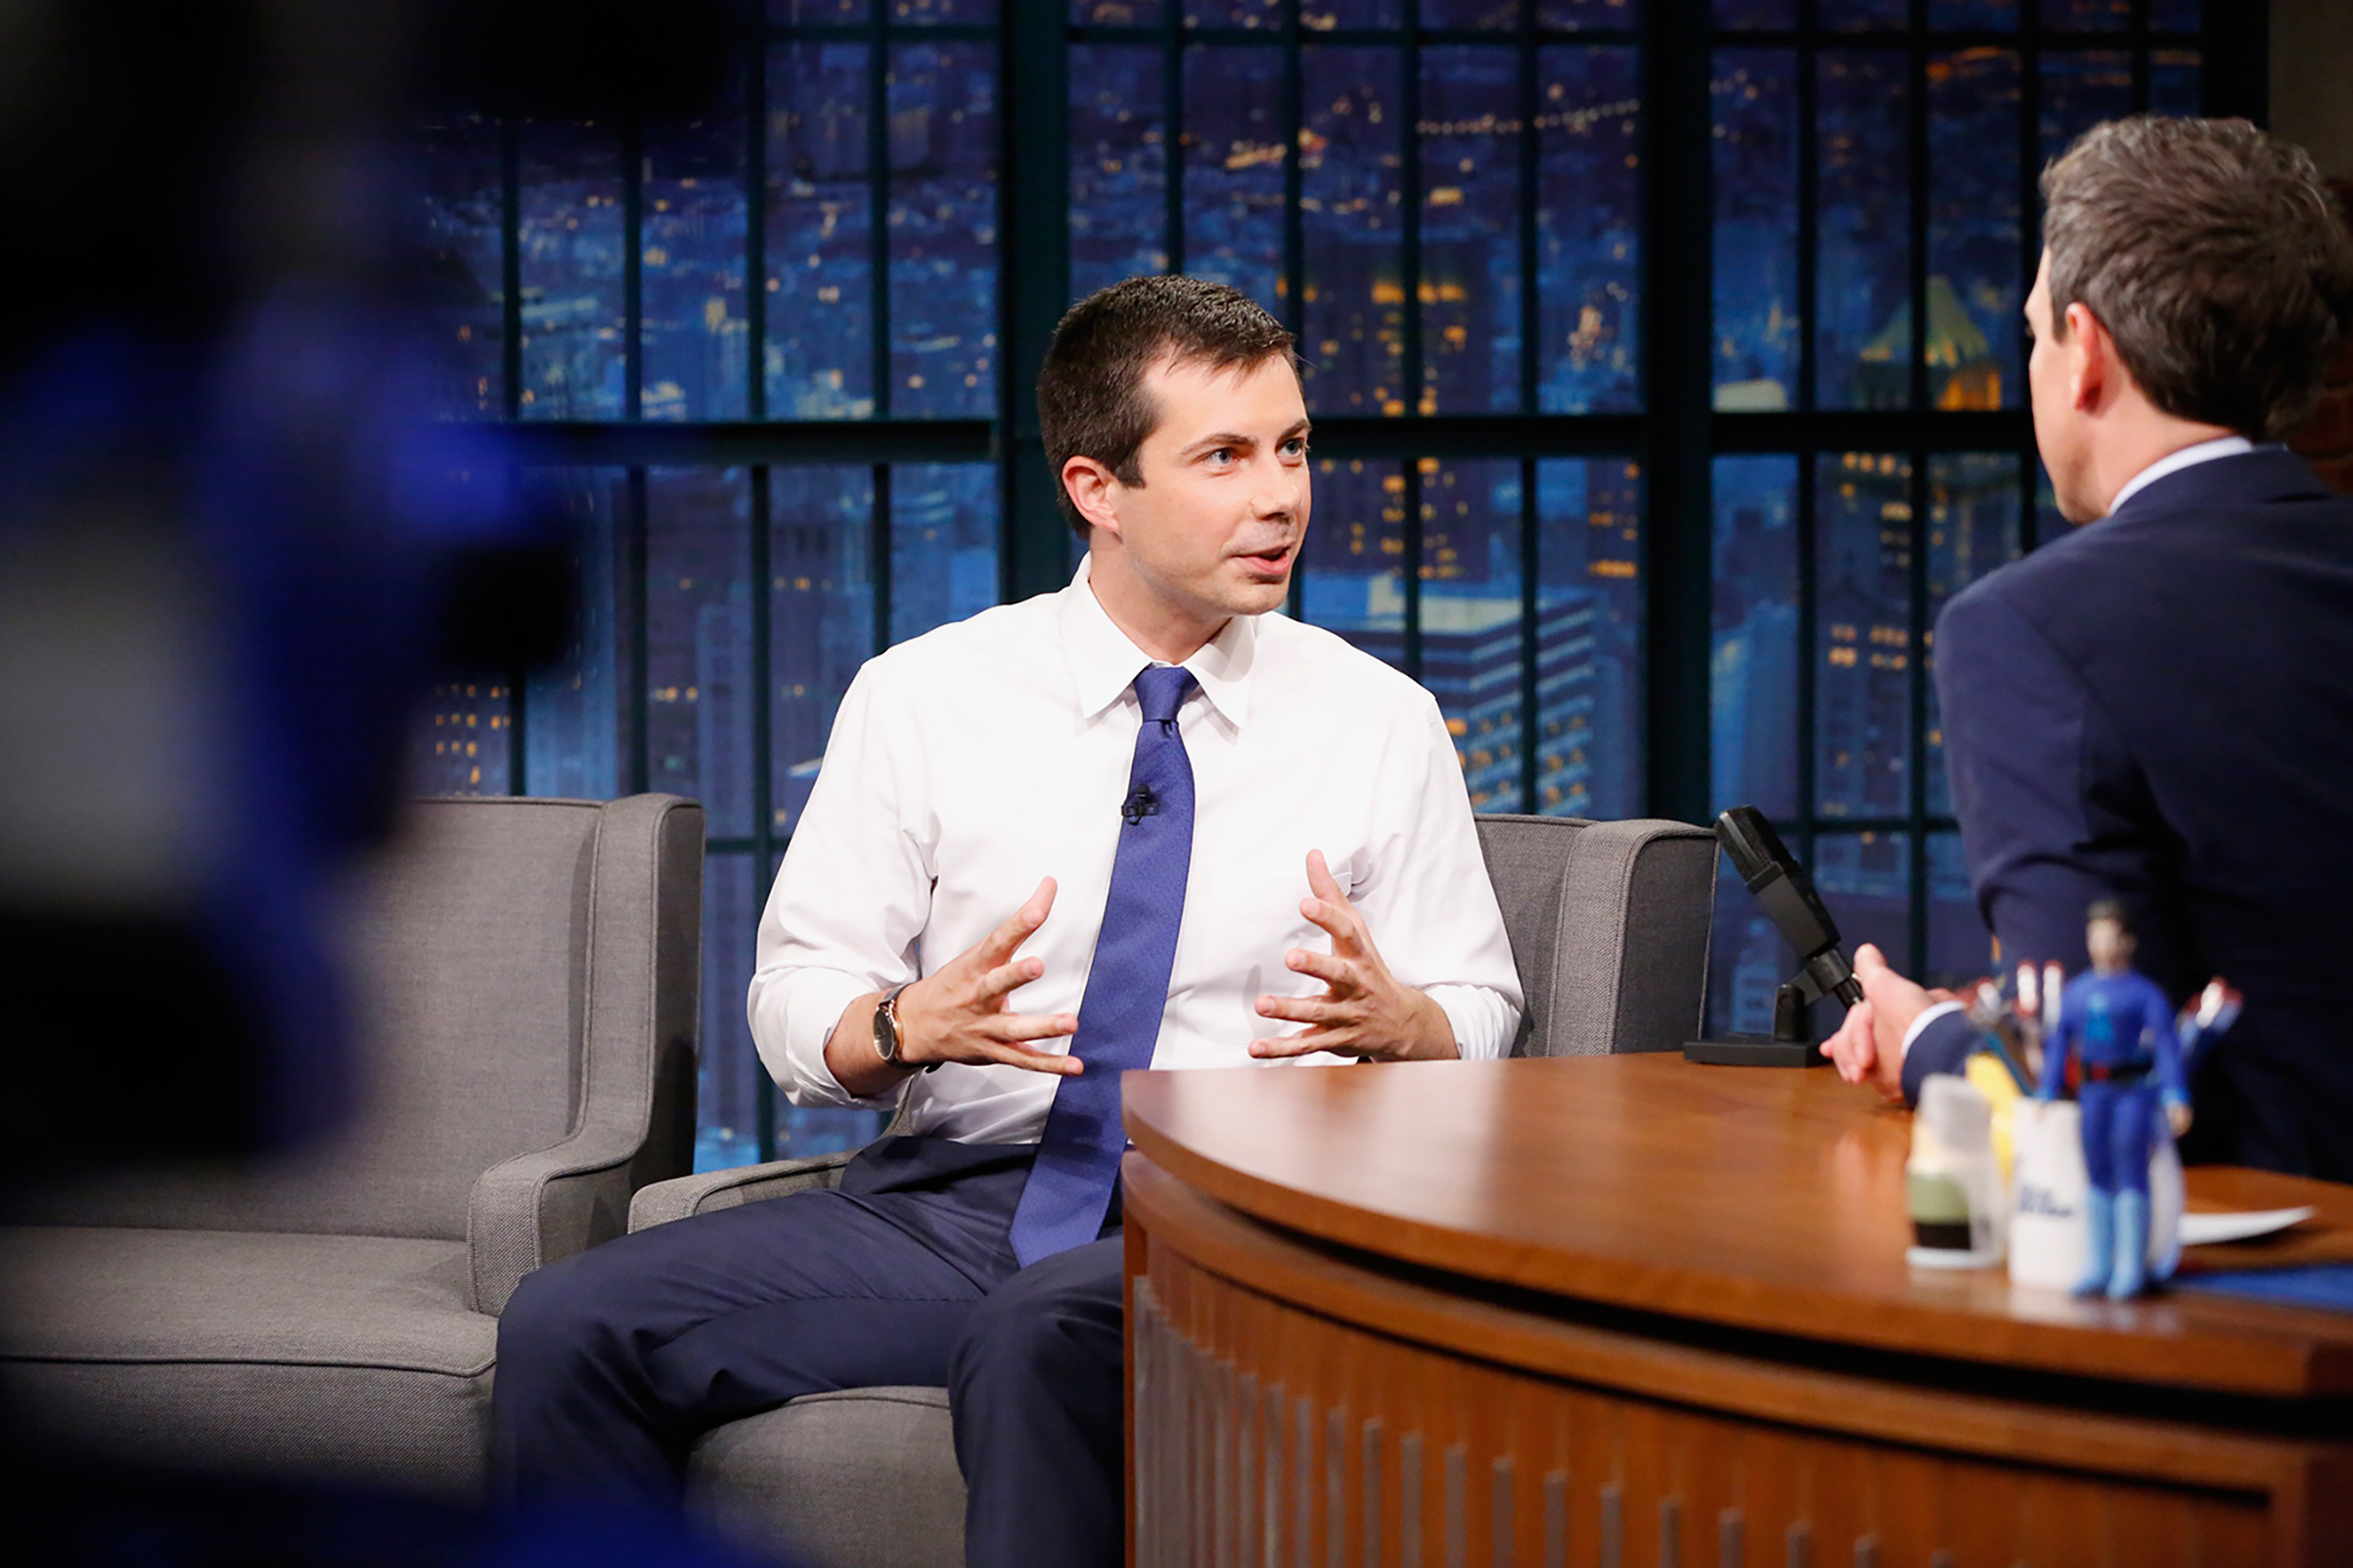 Pete Buttigieg - The 35-year-old, pictured here on Late Night with Seth Meyers, says his view of national security was shaped by serving in Afghanistan